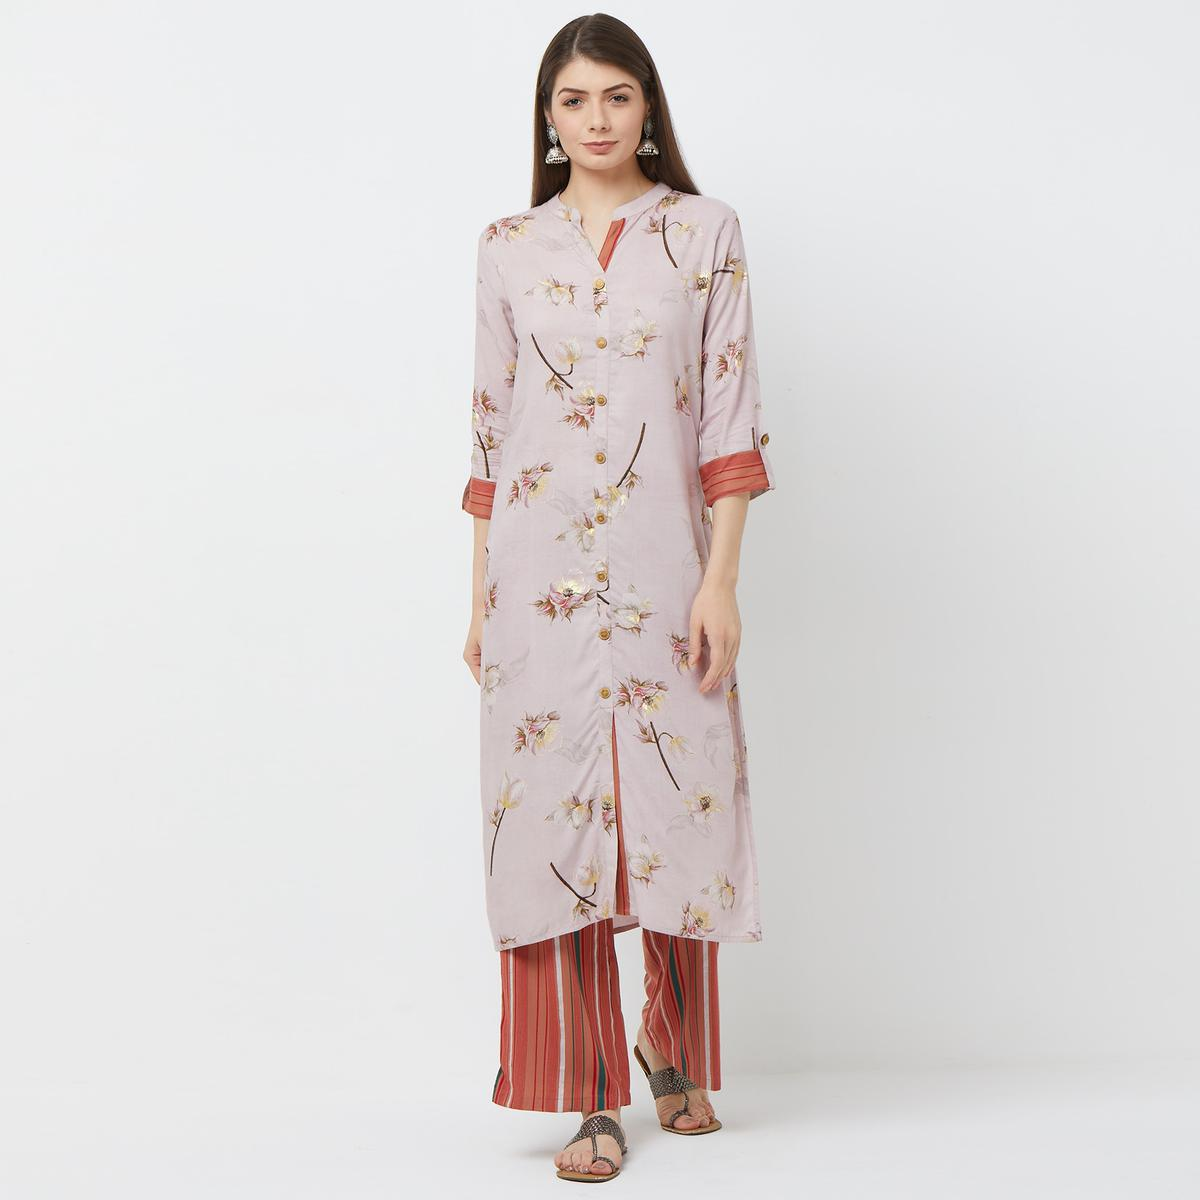 Arresting Light Wine Colored Casual Floral Printed Cotton Kurti-Palazzo Set